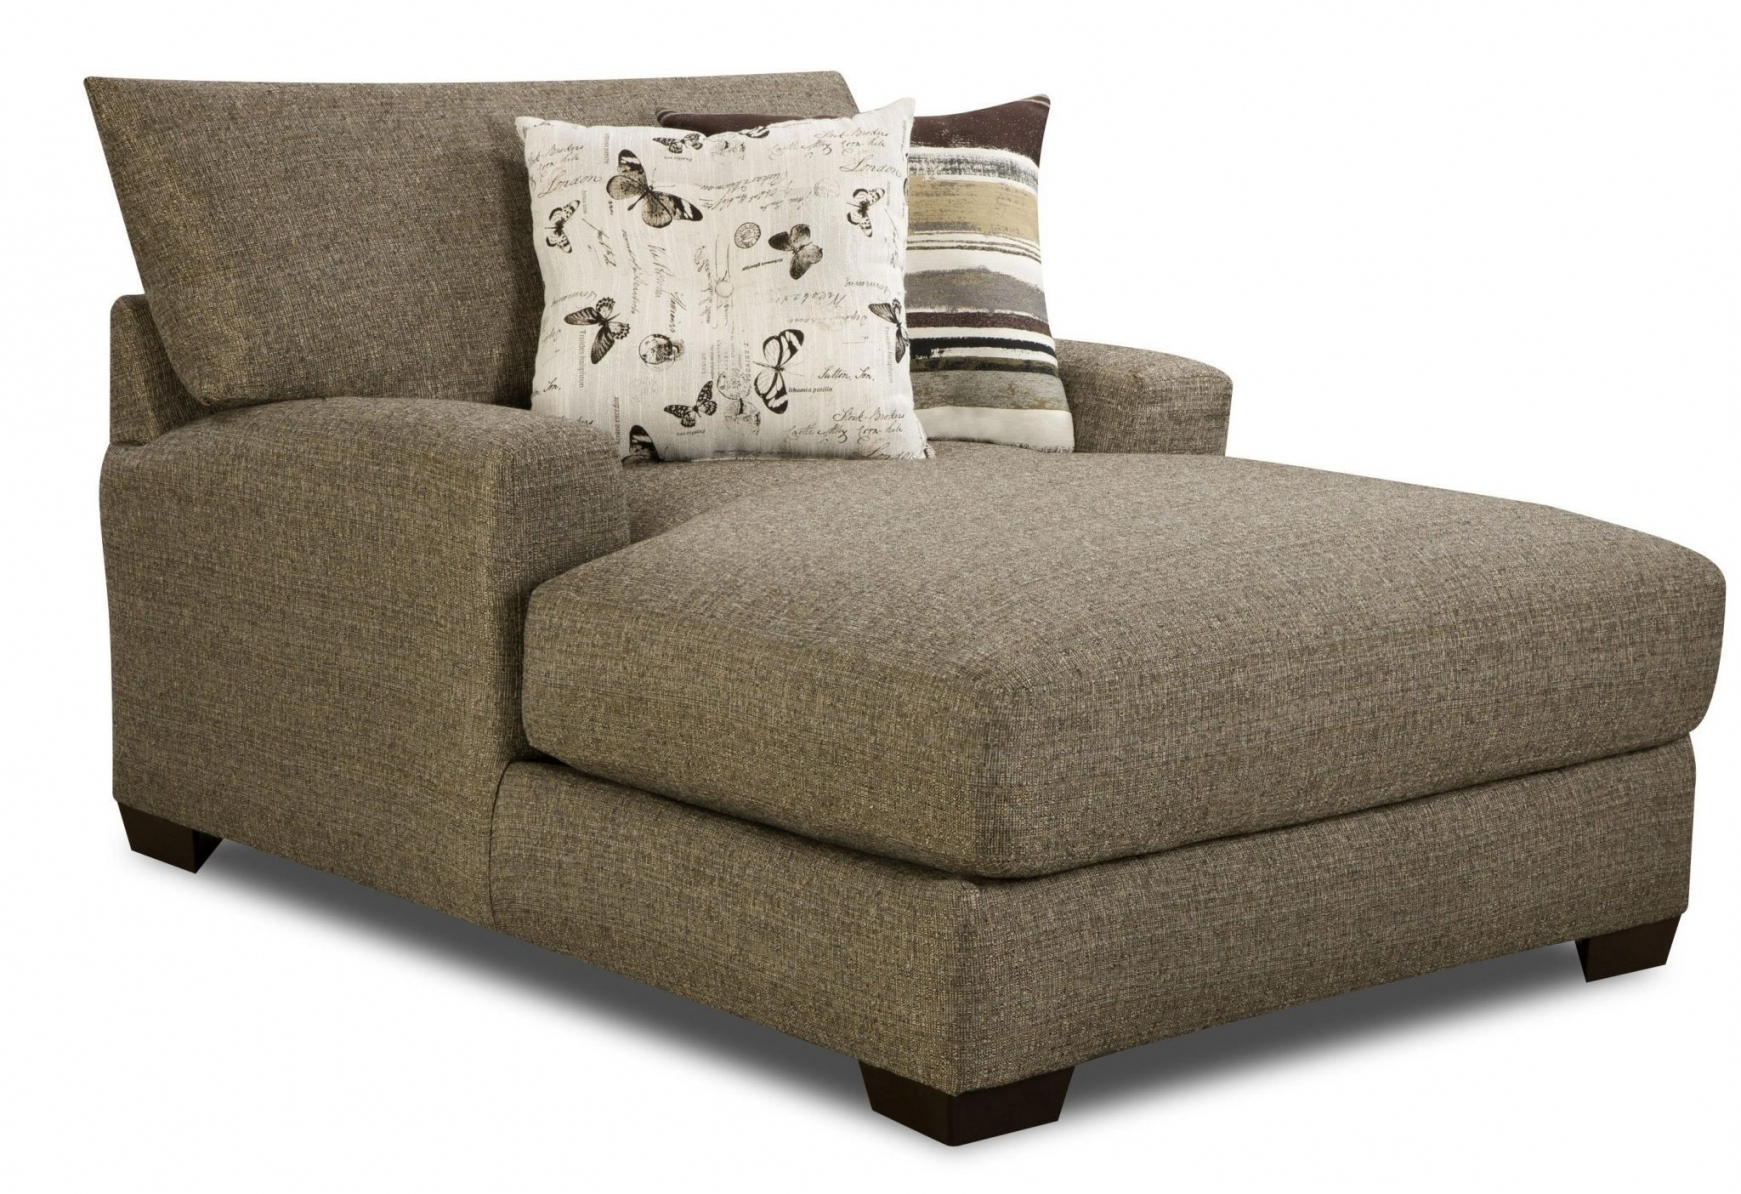 Widely Used Chaise Lounge Chair With Arms For Chaise Lounges With Arms (View 15 of 15)